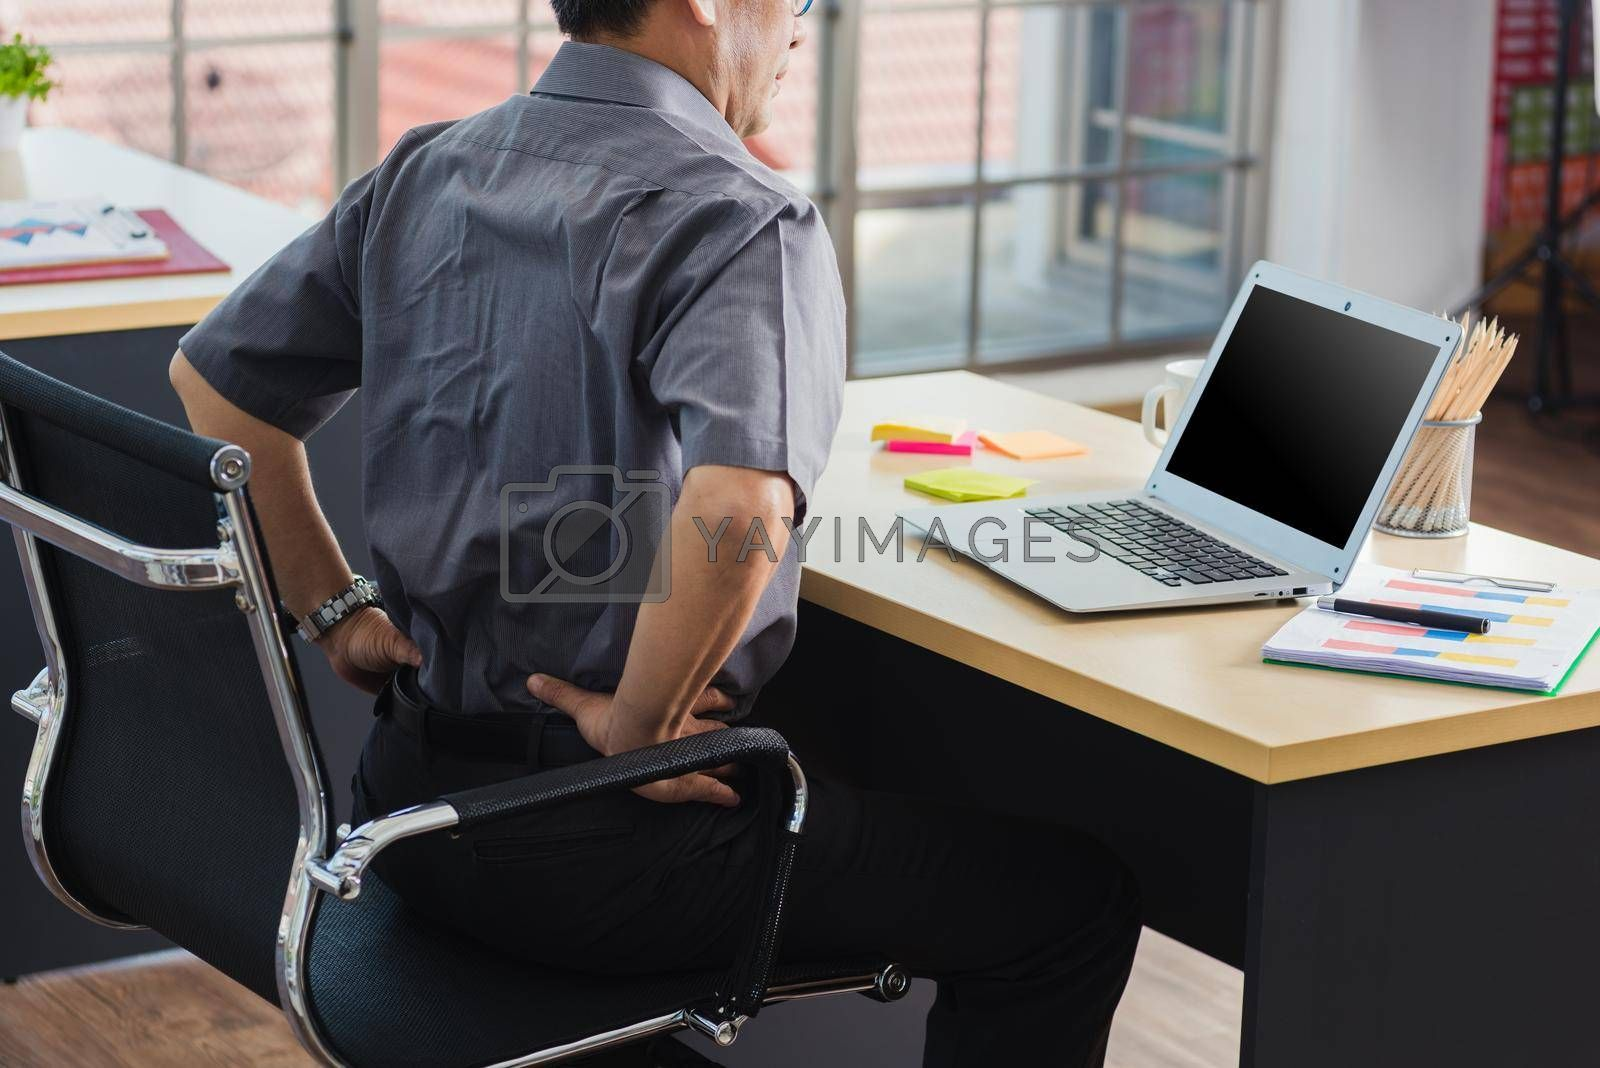 Asian hard senior businessman working with laptop computer has a problem with back pain. Old man feeling pain after sitting at desk long time, Healthcare and medicine office syndrome concept